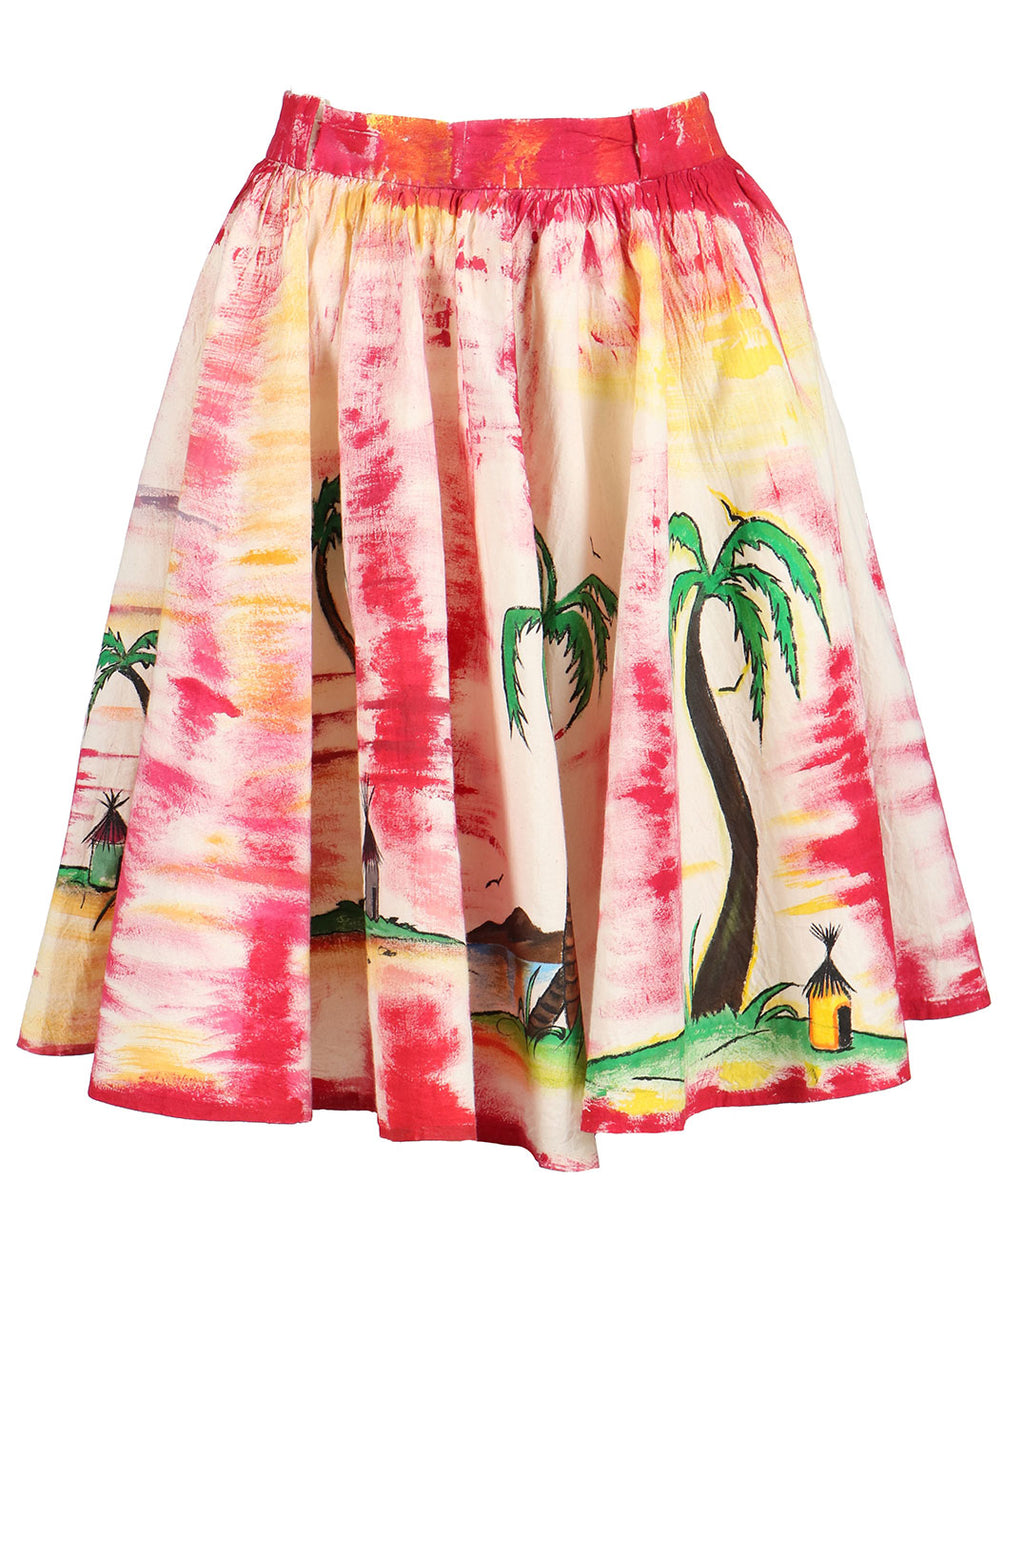 Fanm Mon Hand Painted Linen White Pink Color Island Coconut Tree Summer Skirts HPSS175 SIZE XSMALL